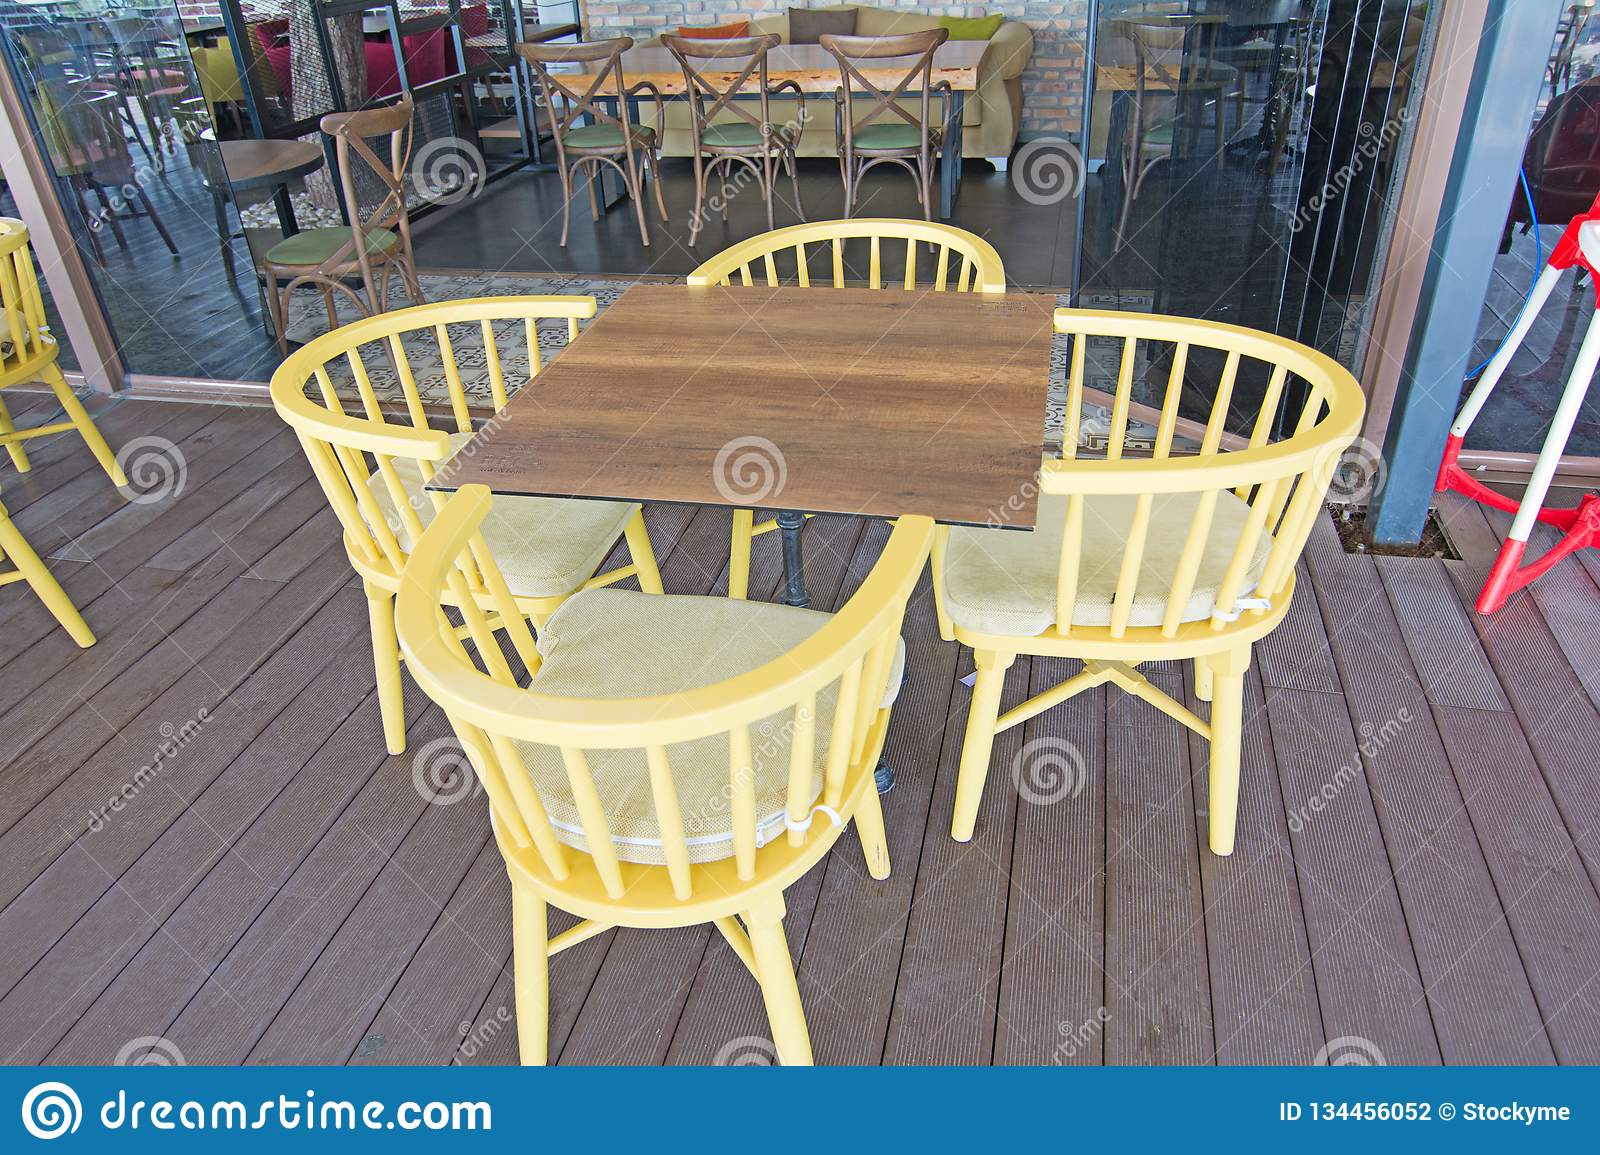 Astounding Set Of Wooden Chair And Table With Four Side Sitting Gmtry Best Dining Table And Chair Ideas Images Gmtryco